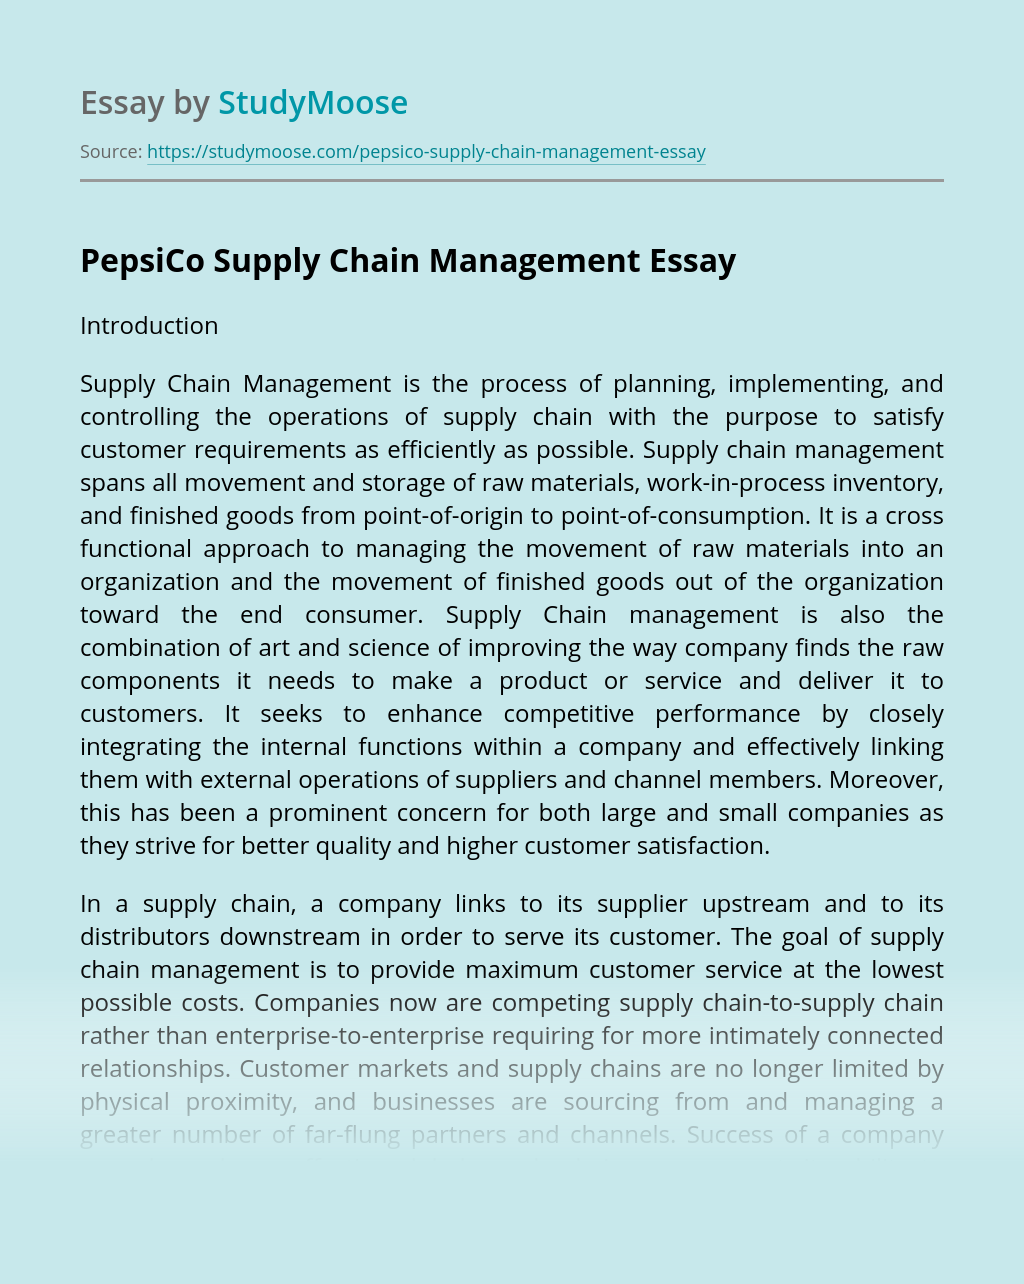 PepsiCo Supply Chain Management